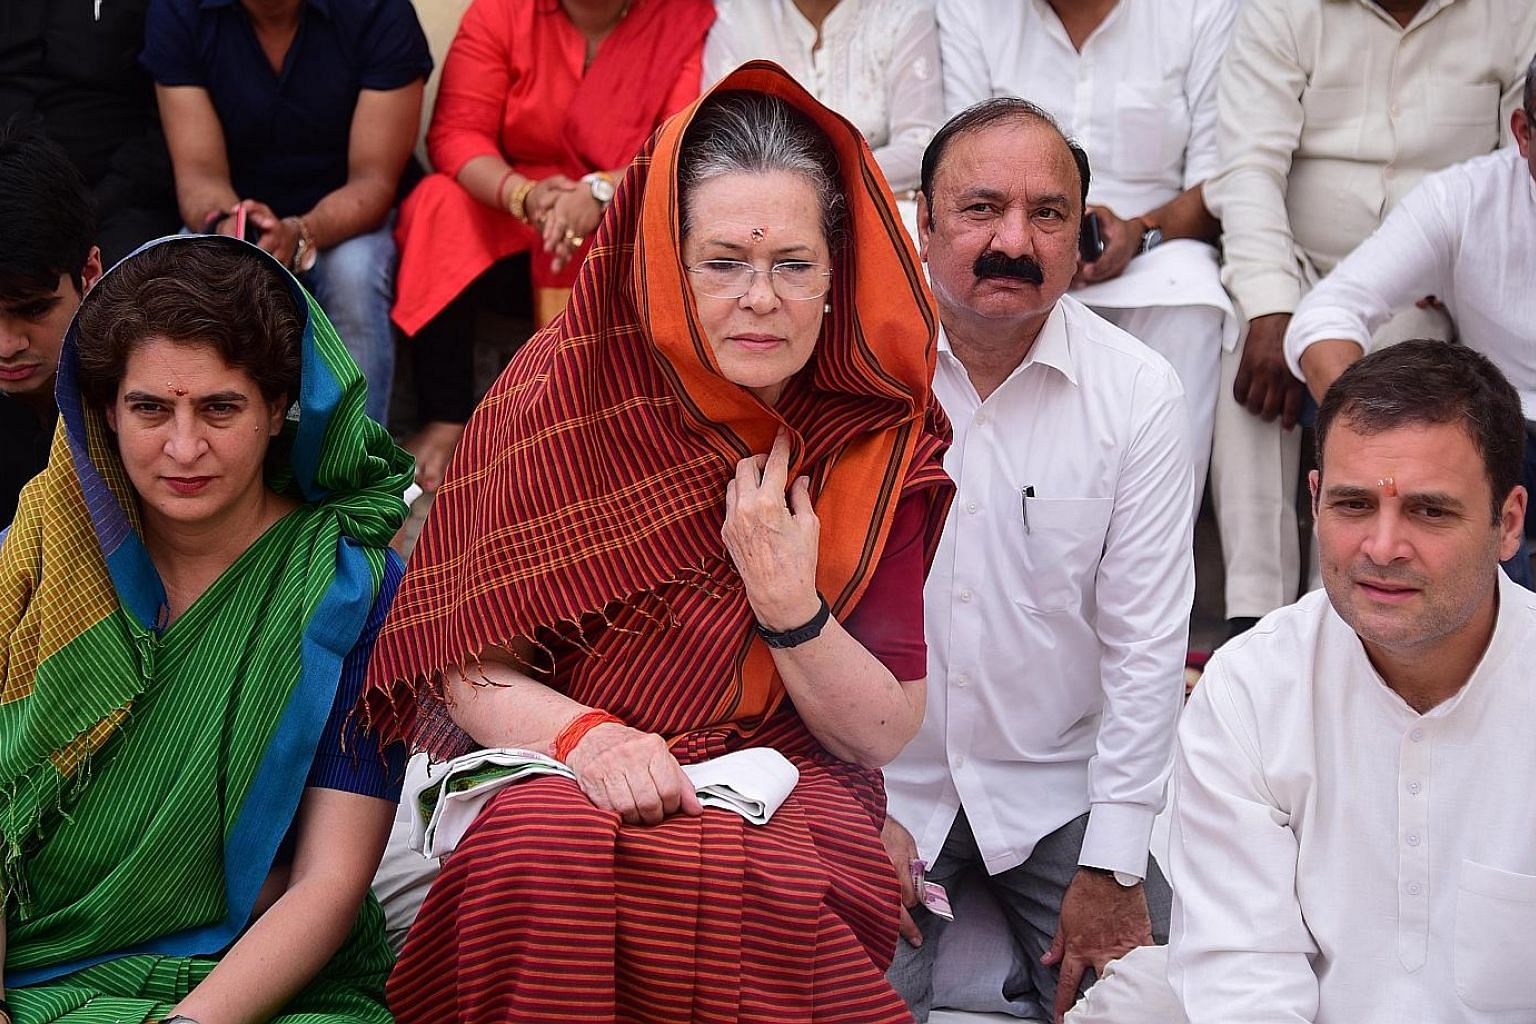 Former Congress party president Sonia Gandhi (centre), her daughter and party member Priyanka Gandhi (left), and her son, Congress president Rahul Gandhi (right), attending a prayer at a temple before filing her nomination papers in Raebareli, Uttar